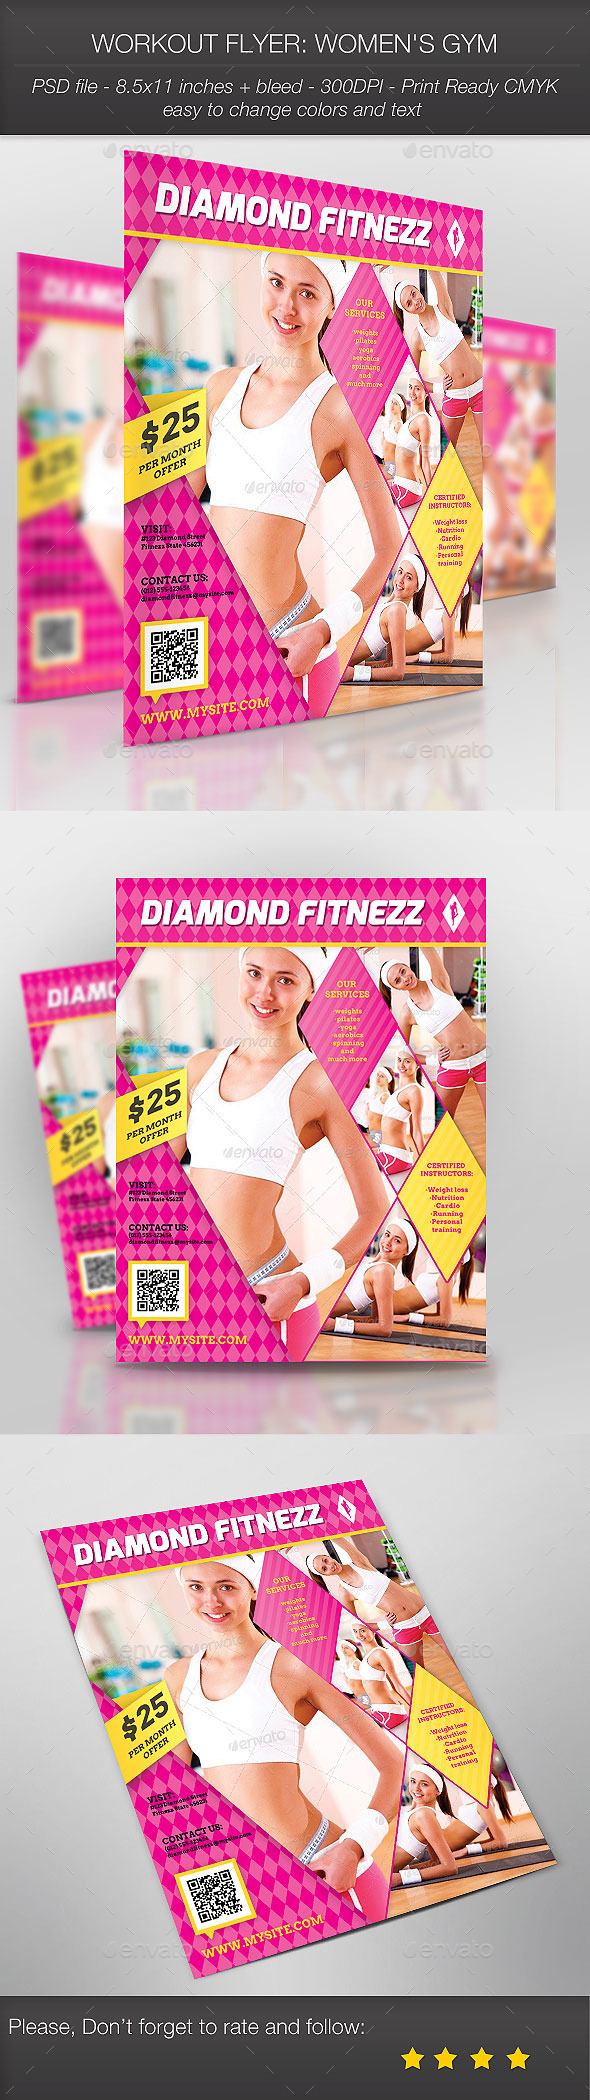 Workout Flyer: Women's Gym - Sports Events